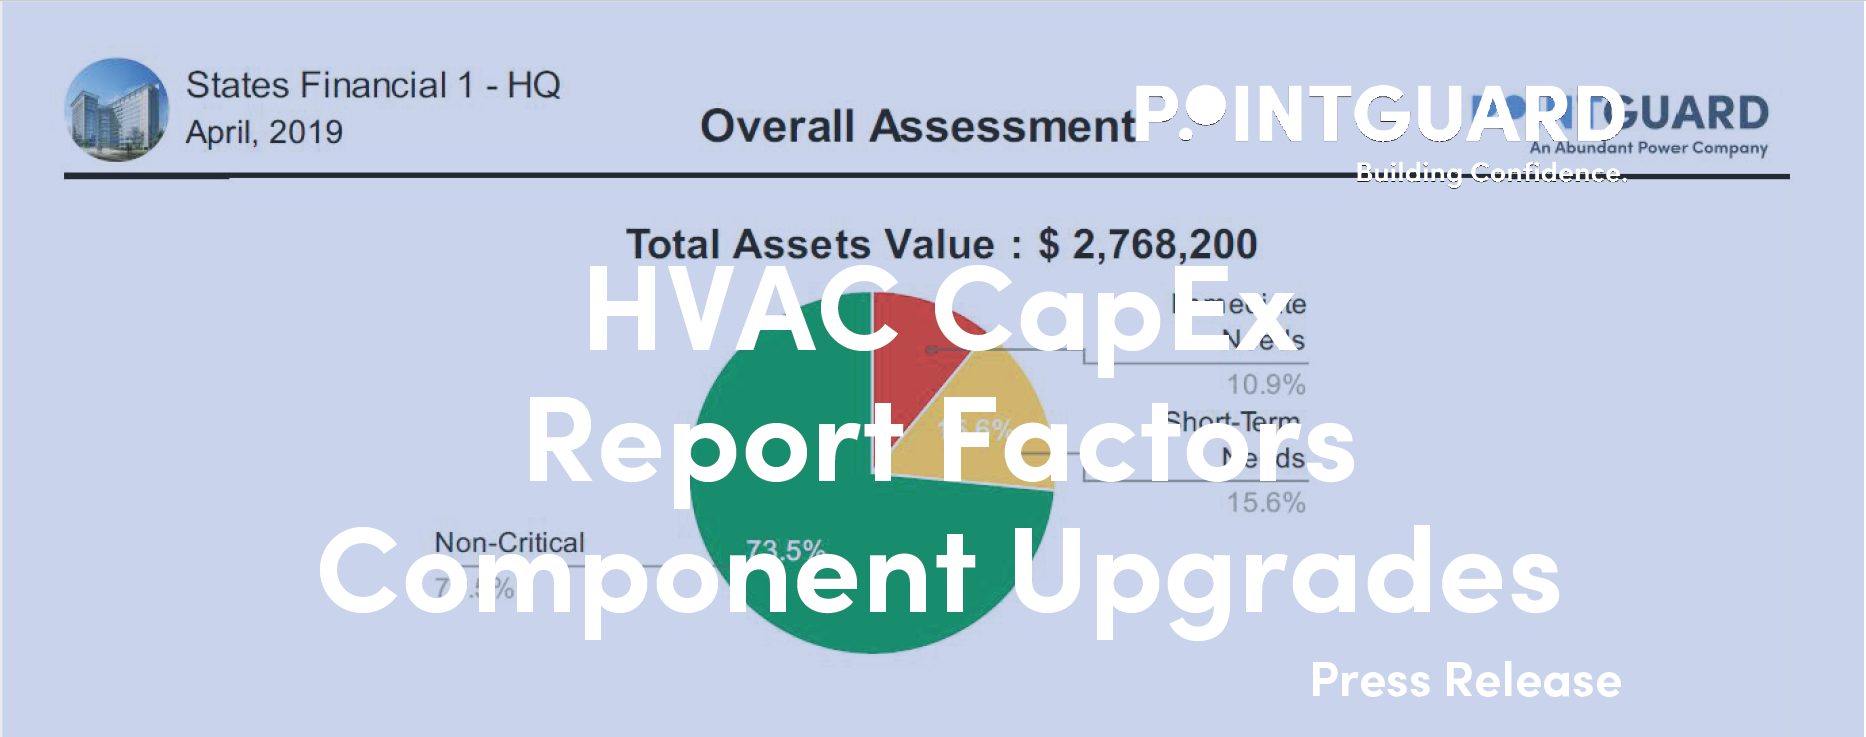 PointGuard Now Factors Component Upgrades into HVAC CapEx Report